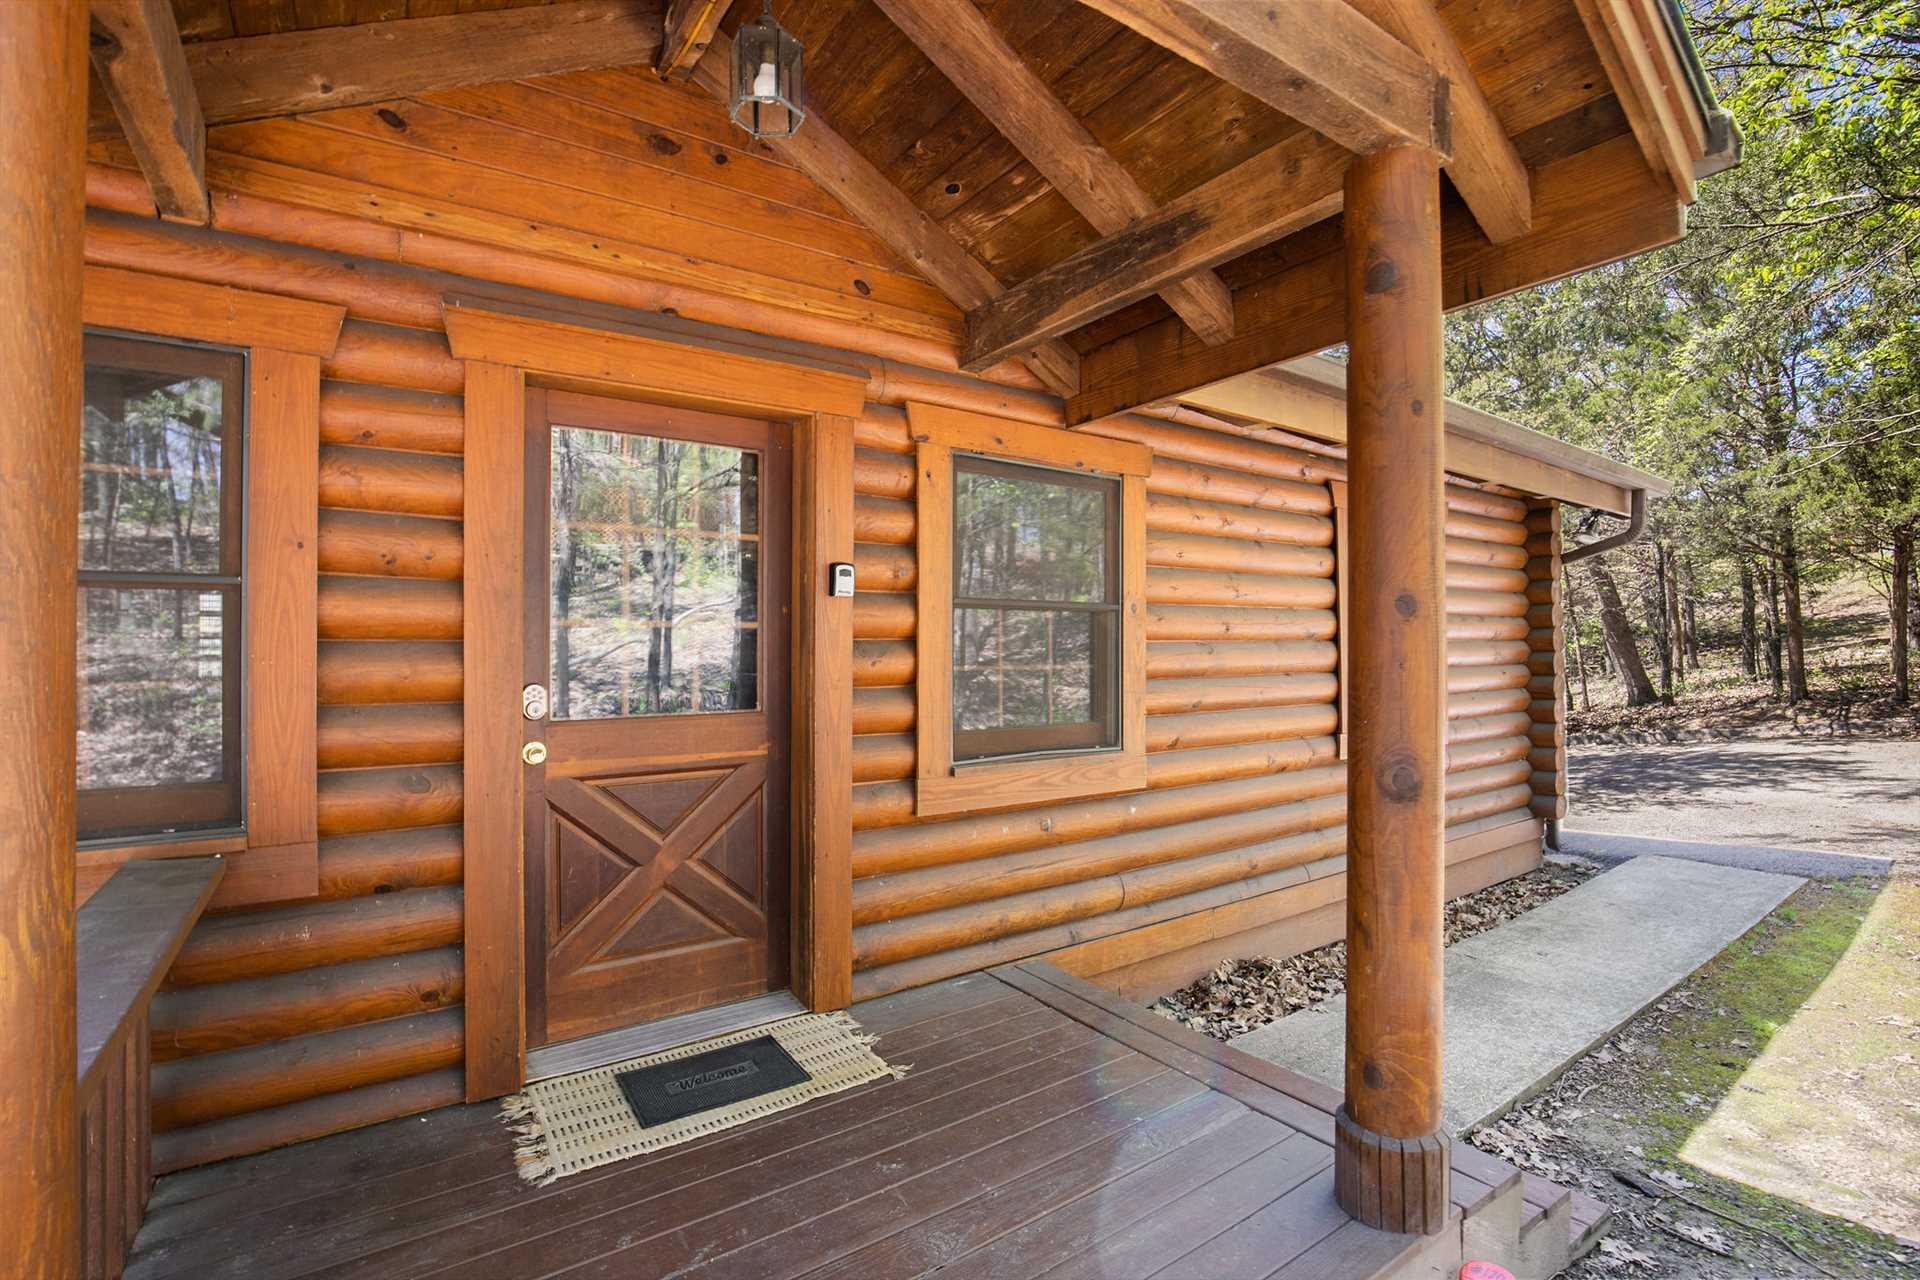 This Branson Woods cabin features authentic log construction